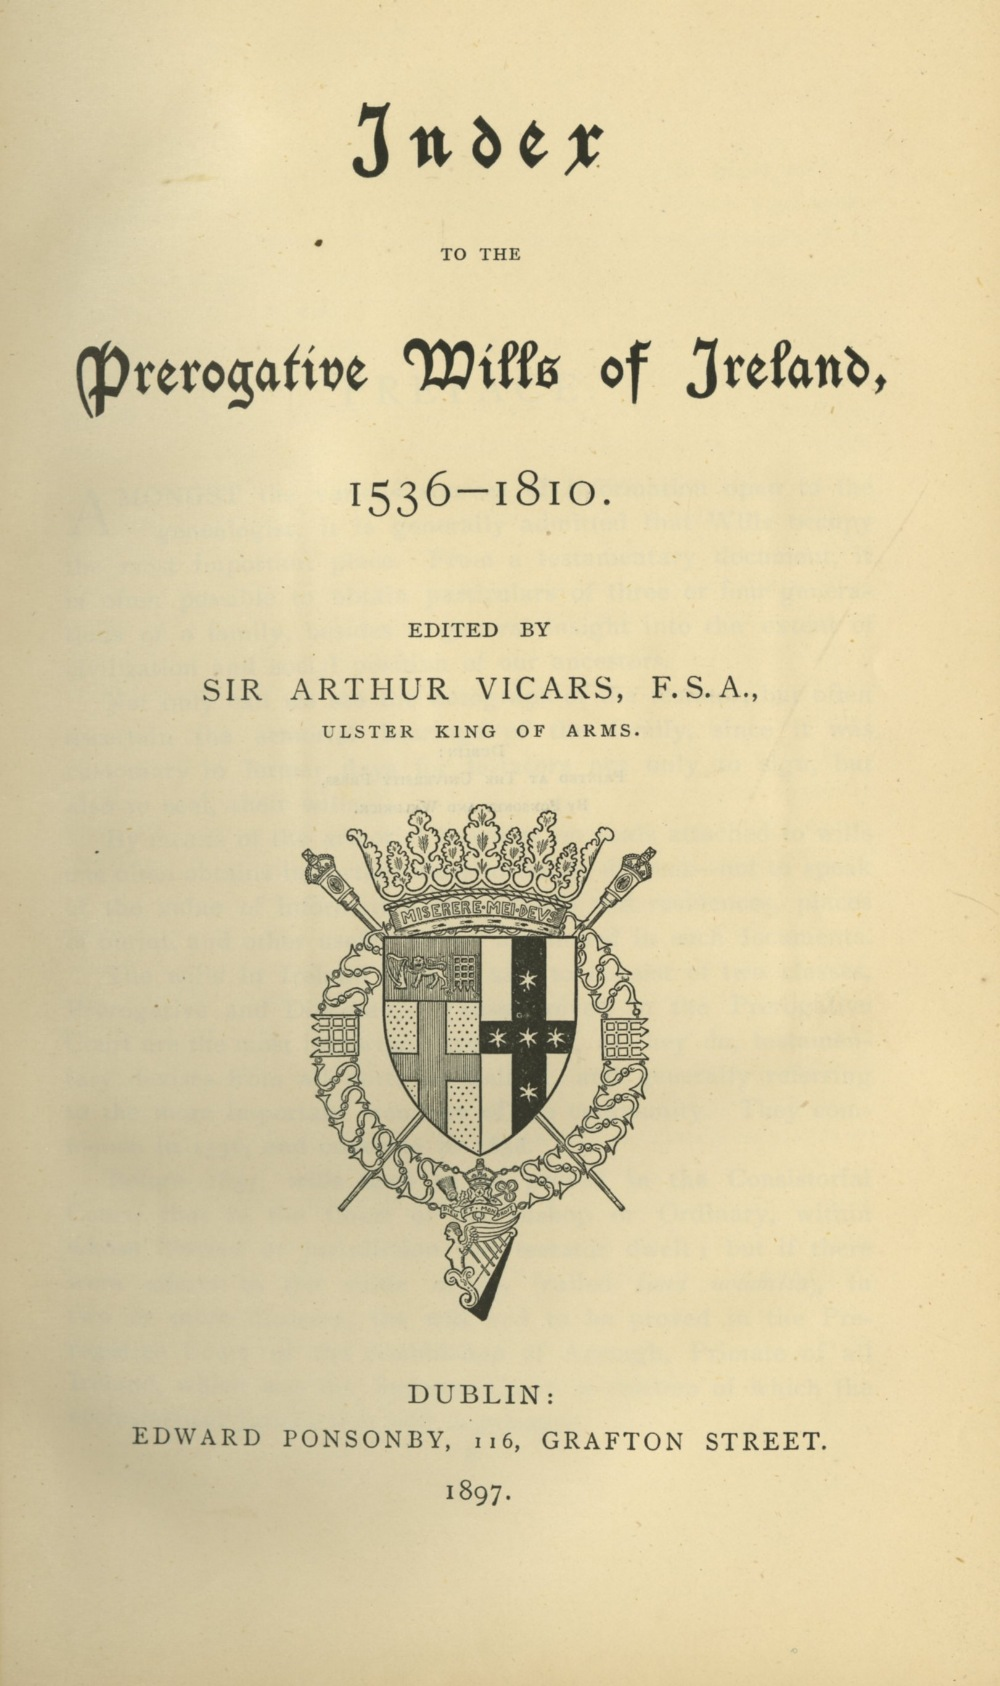 Vicars (Sir A.) Index to the Prerogative Wills of Ireland, 1536 - 1810, roy 8vo D. 1897. - Image 3 of 3